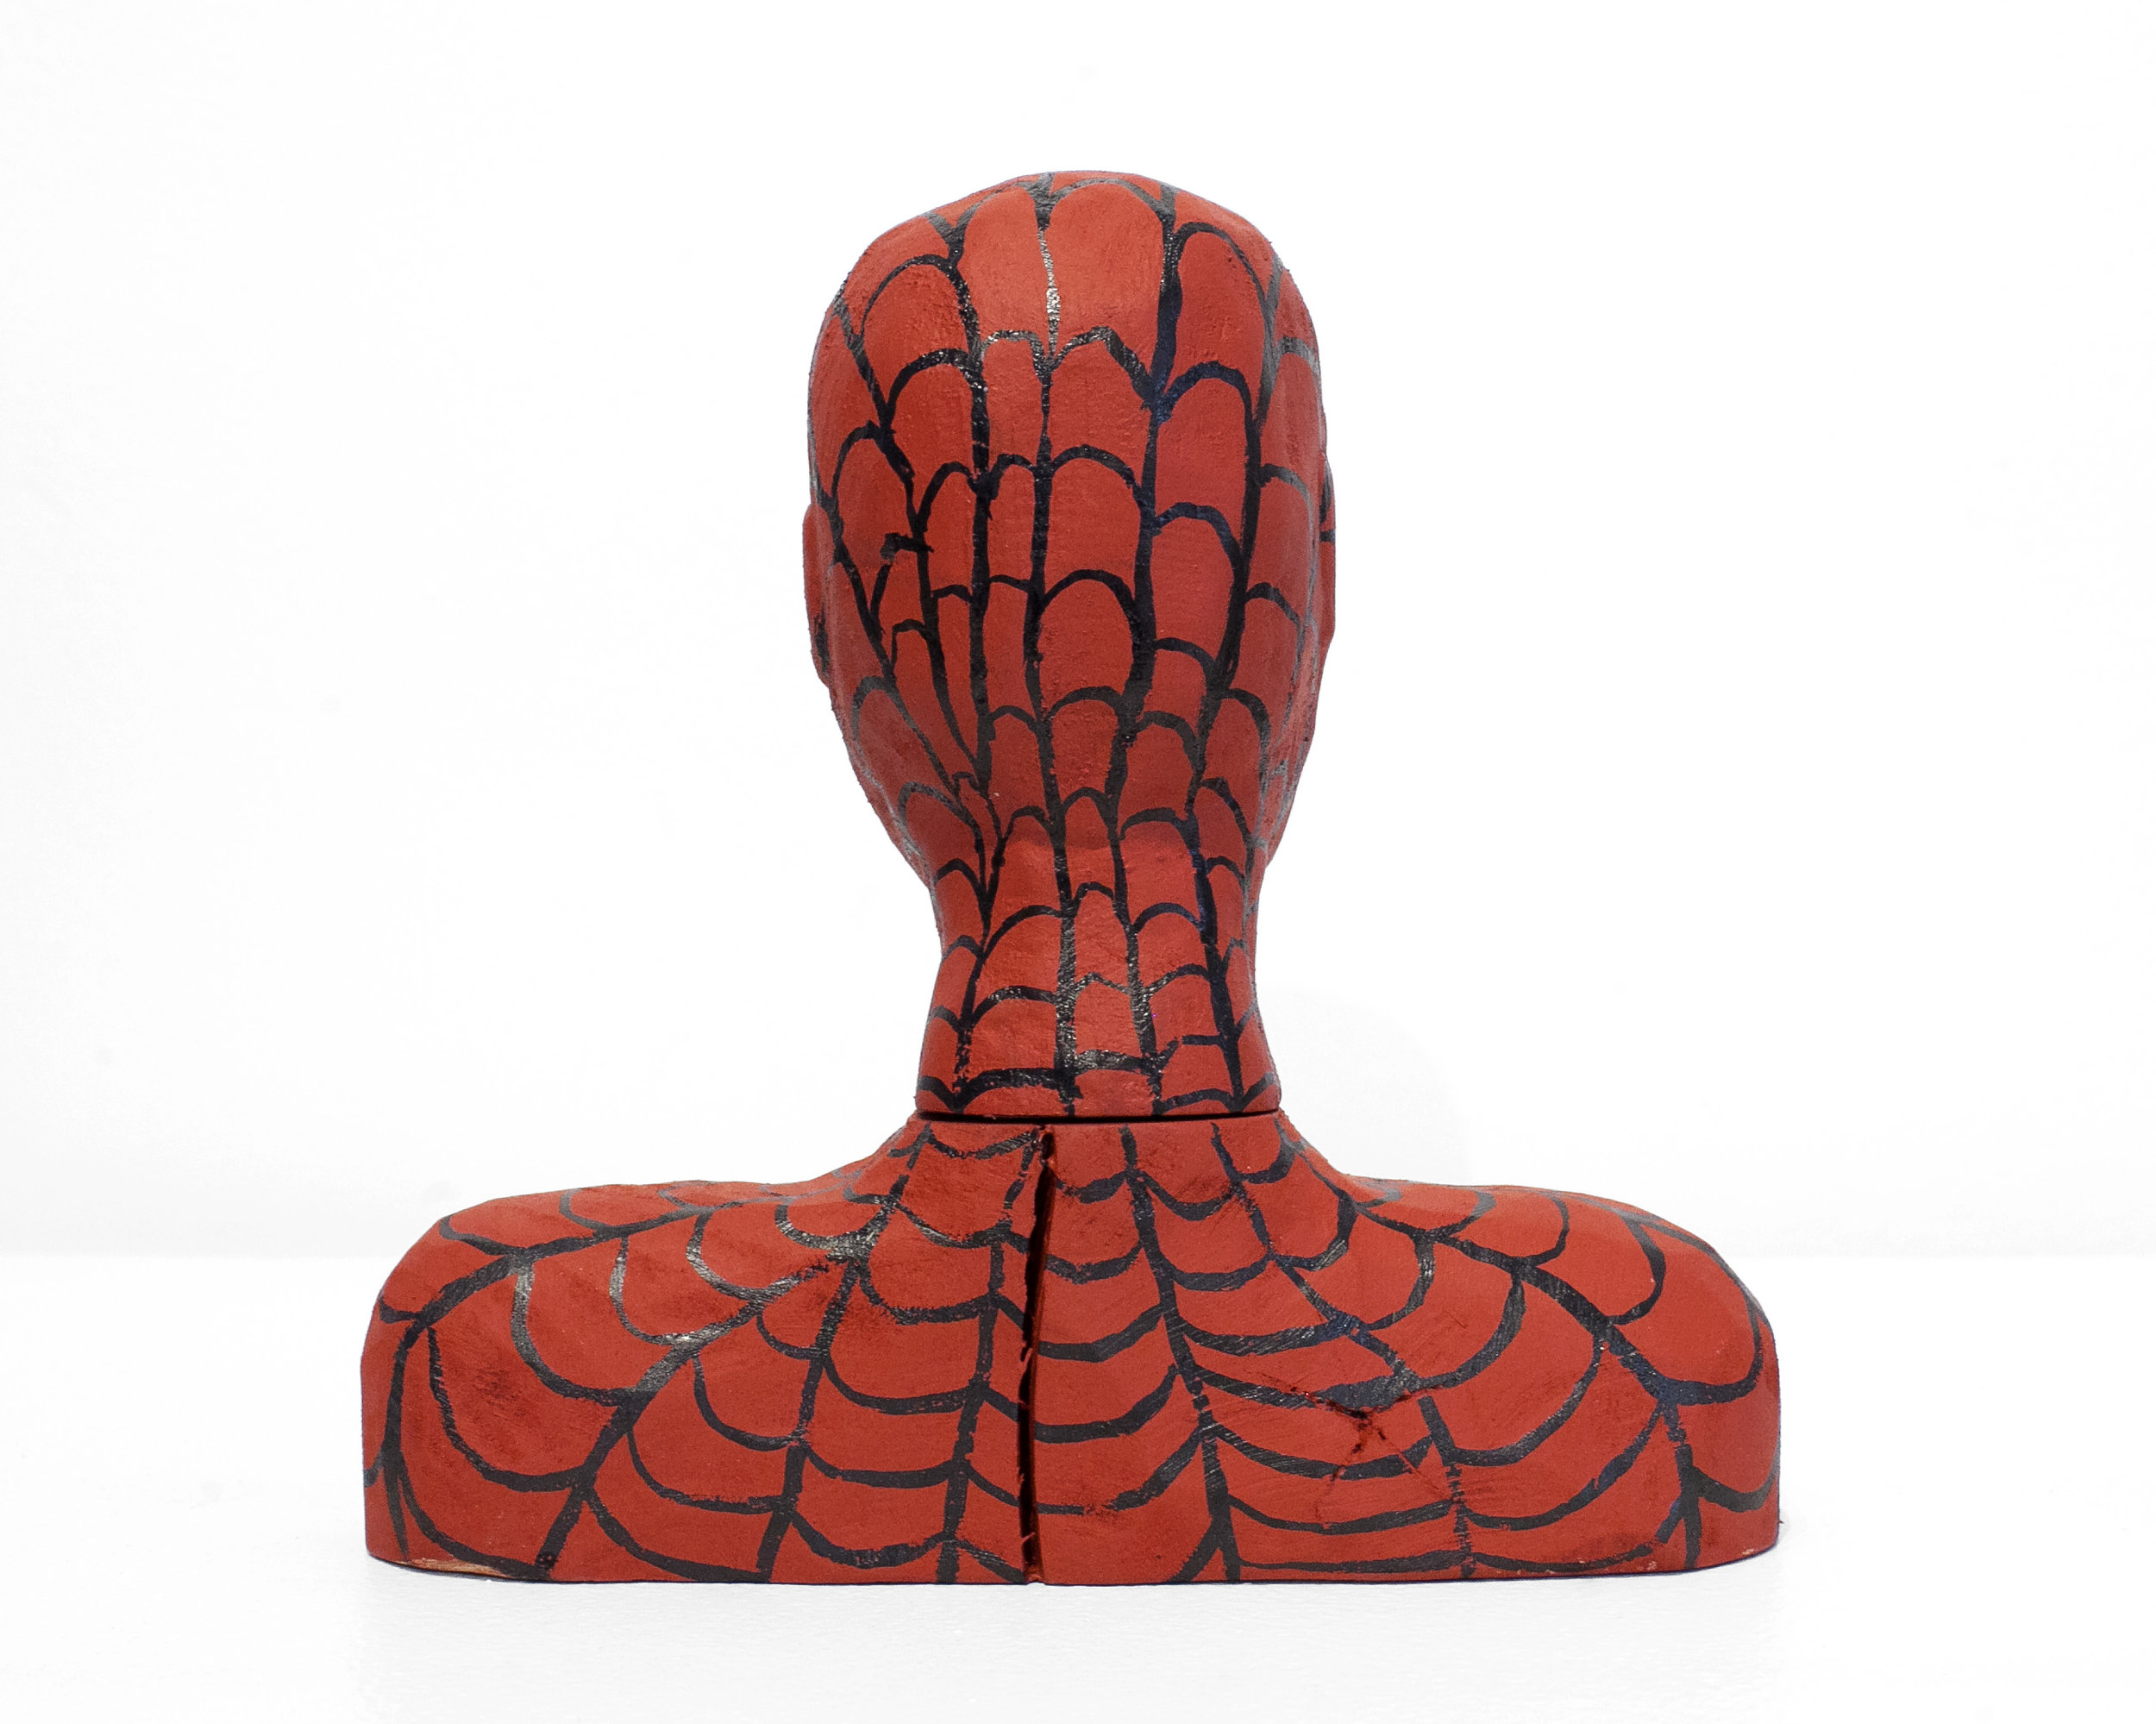 oliverhawk_spidermanheadsculpture_3.jpg